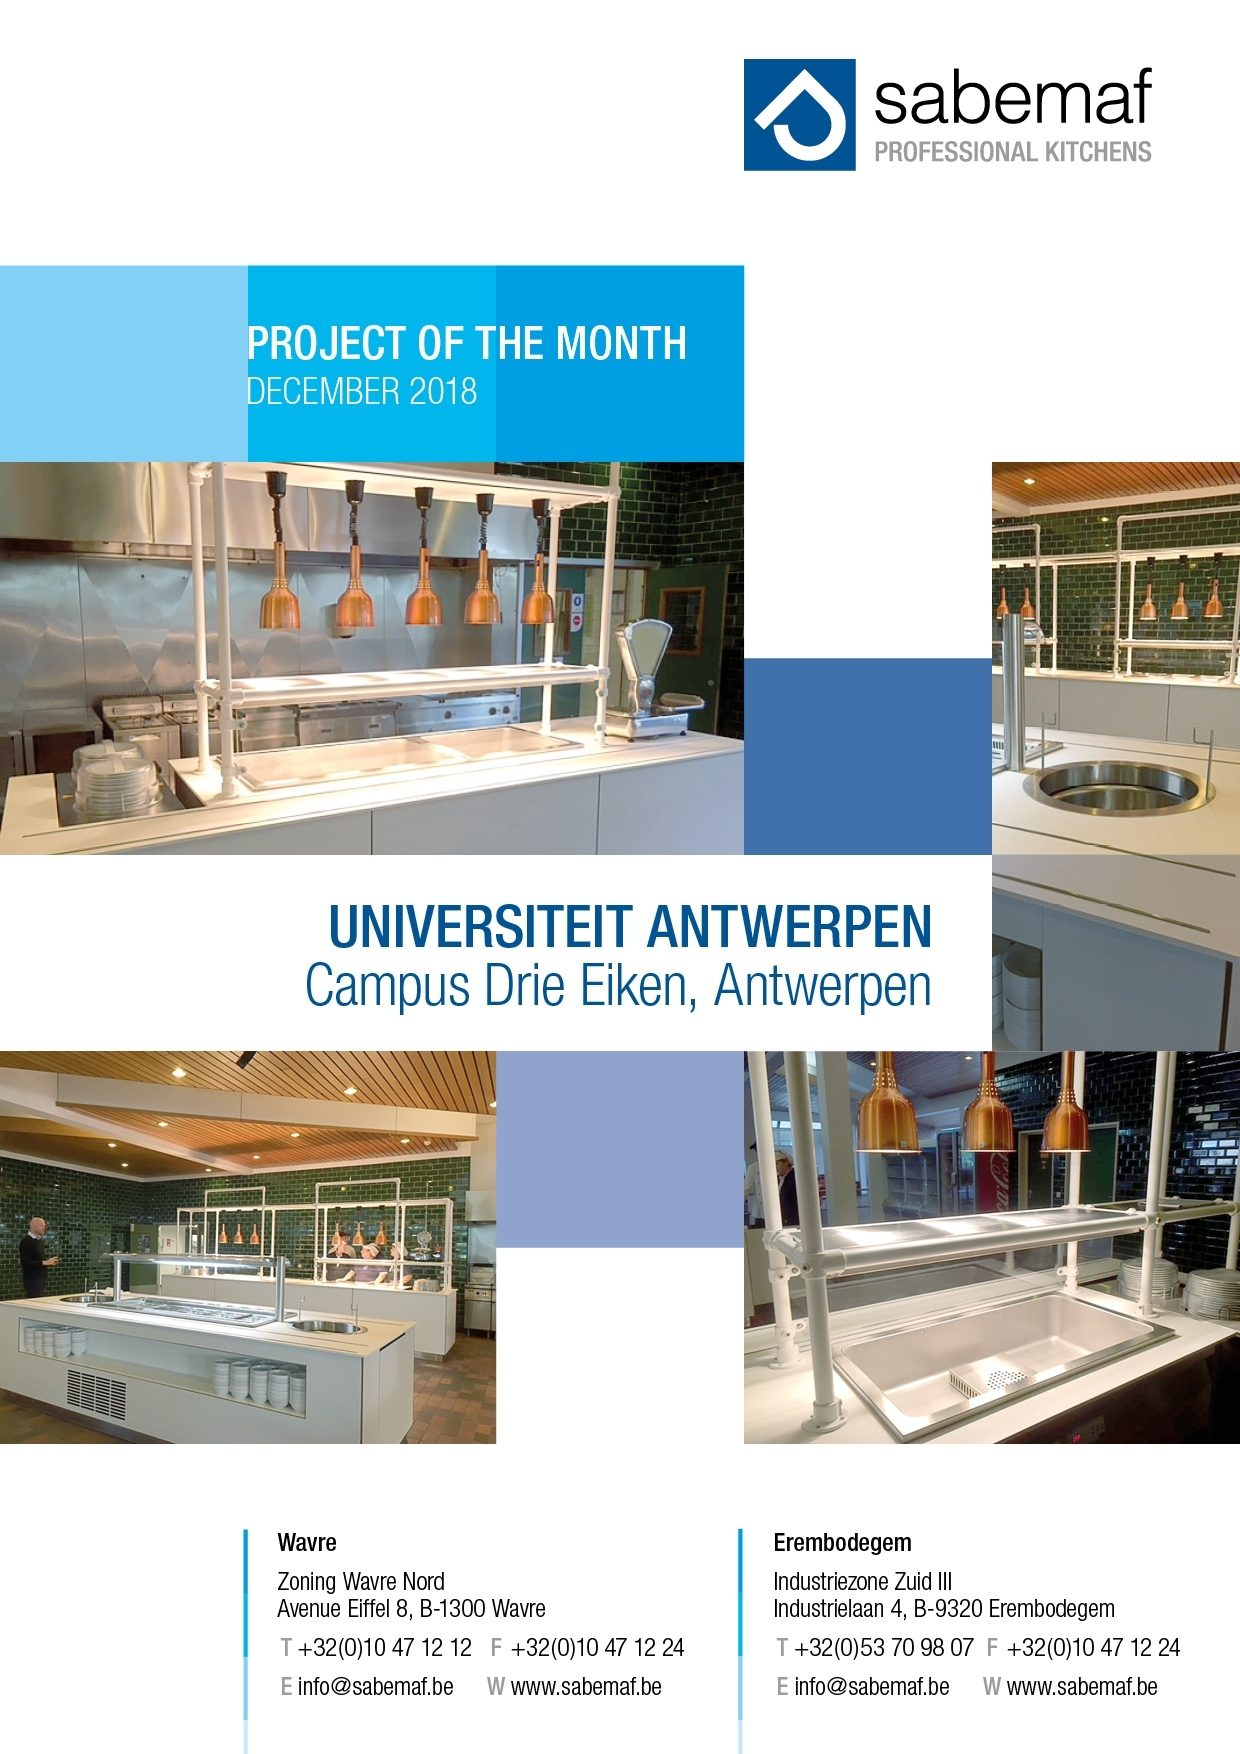 POM Dec 18 - Universiteit Antwerpen